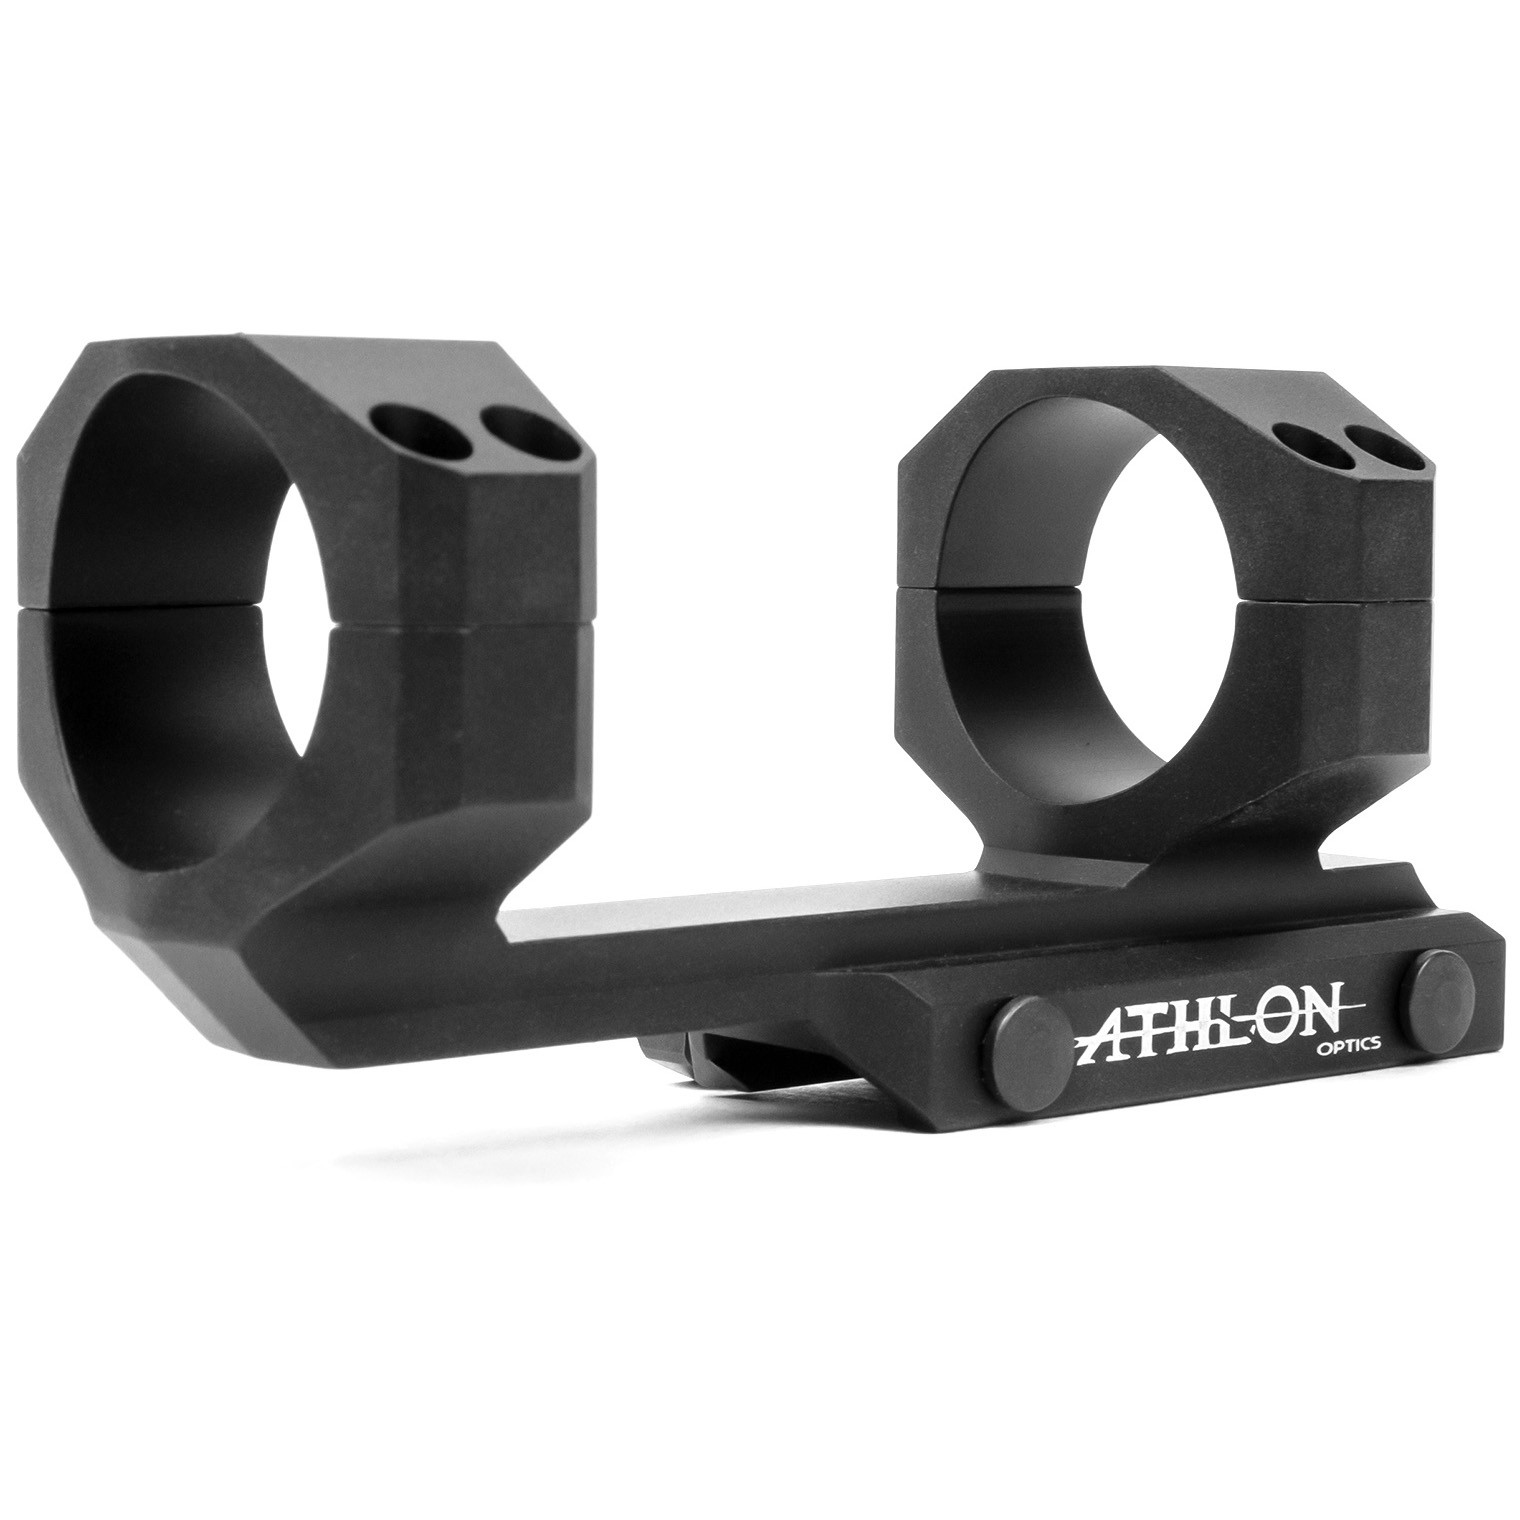 Athlon Cantilever 30mm Scope Mount